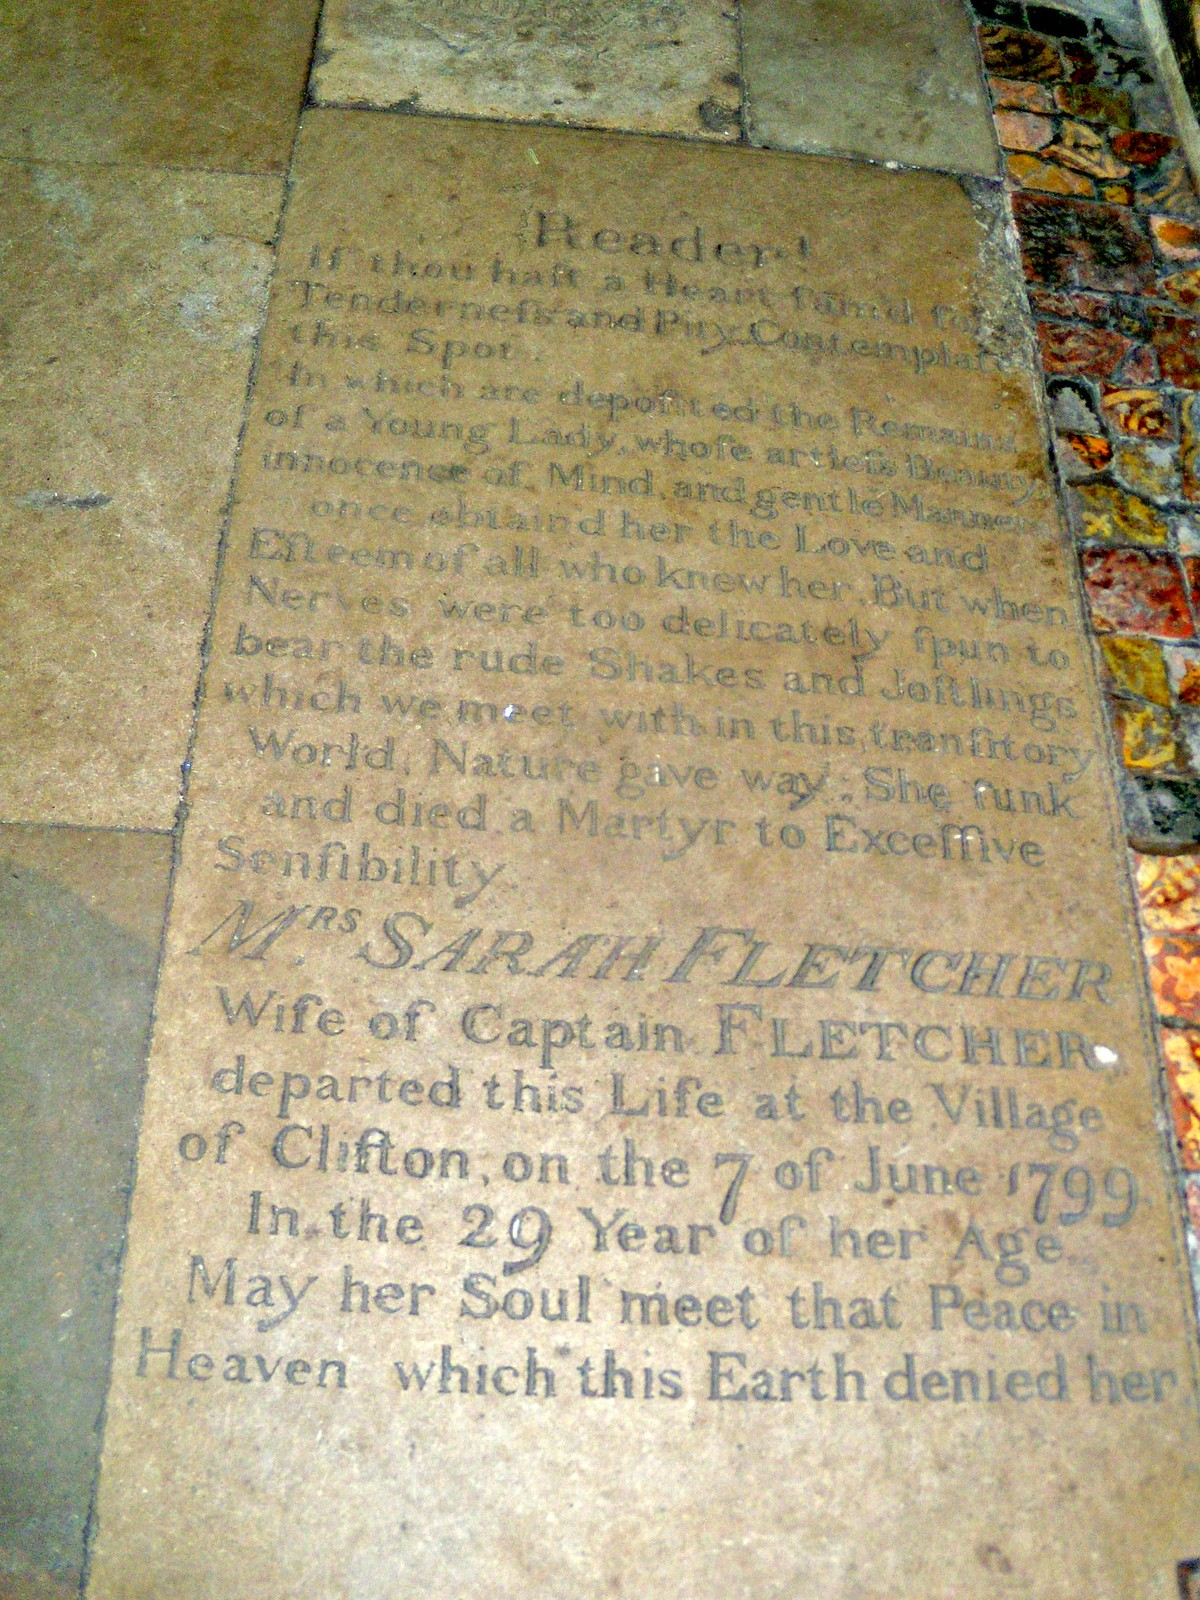 "Sad Stone ""Reader, if thou hast a heart fam'd for tenderness and pity, contemplate this spot. In which are deposited the remains of a young lady whose artless beauty, innocence of mind and gentle manner once obtain'd her the love and esteem of all who knew her. But when nerves were too delicately spun to bear the rude shakes and jostlings which we meet with in this transitory world, nature gave way. She sunk and died a martyr to excessive sensibility"" I was really taken by this epitaph and wanted to find out more. There is indeed more and here is some of it. atmospherichauntedplaces.blogspot.com/2009/03/courtiers-clifton-hampden.html"" rel=""nofollow atmospherichauntedplaces.blogspot.com/2009/03/courtiers-c... www.horrormasters.com/Text/a2781.pdf"" rel=""nofollow www.horrormasters.com/Text/a2781.pdf Dorchester Abbey, Appleford Circular"